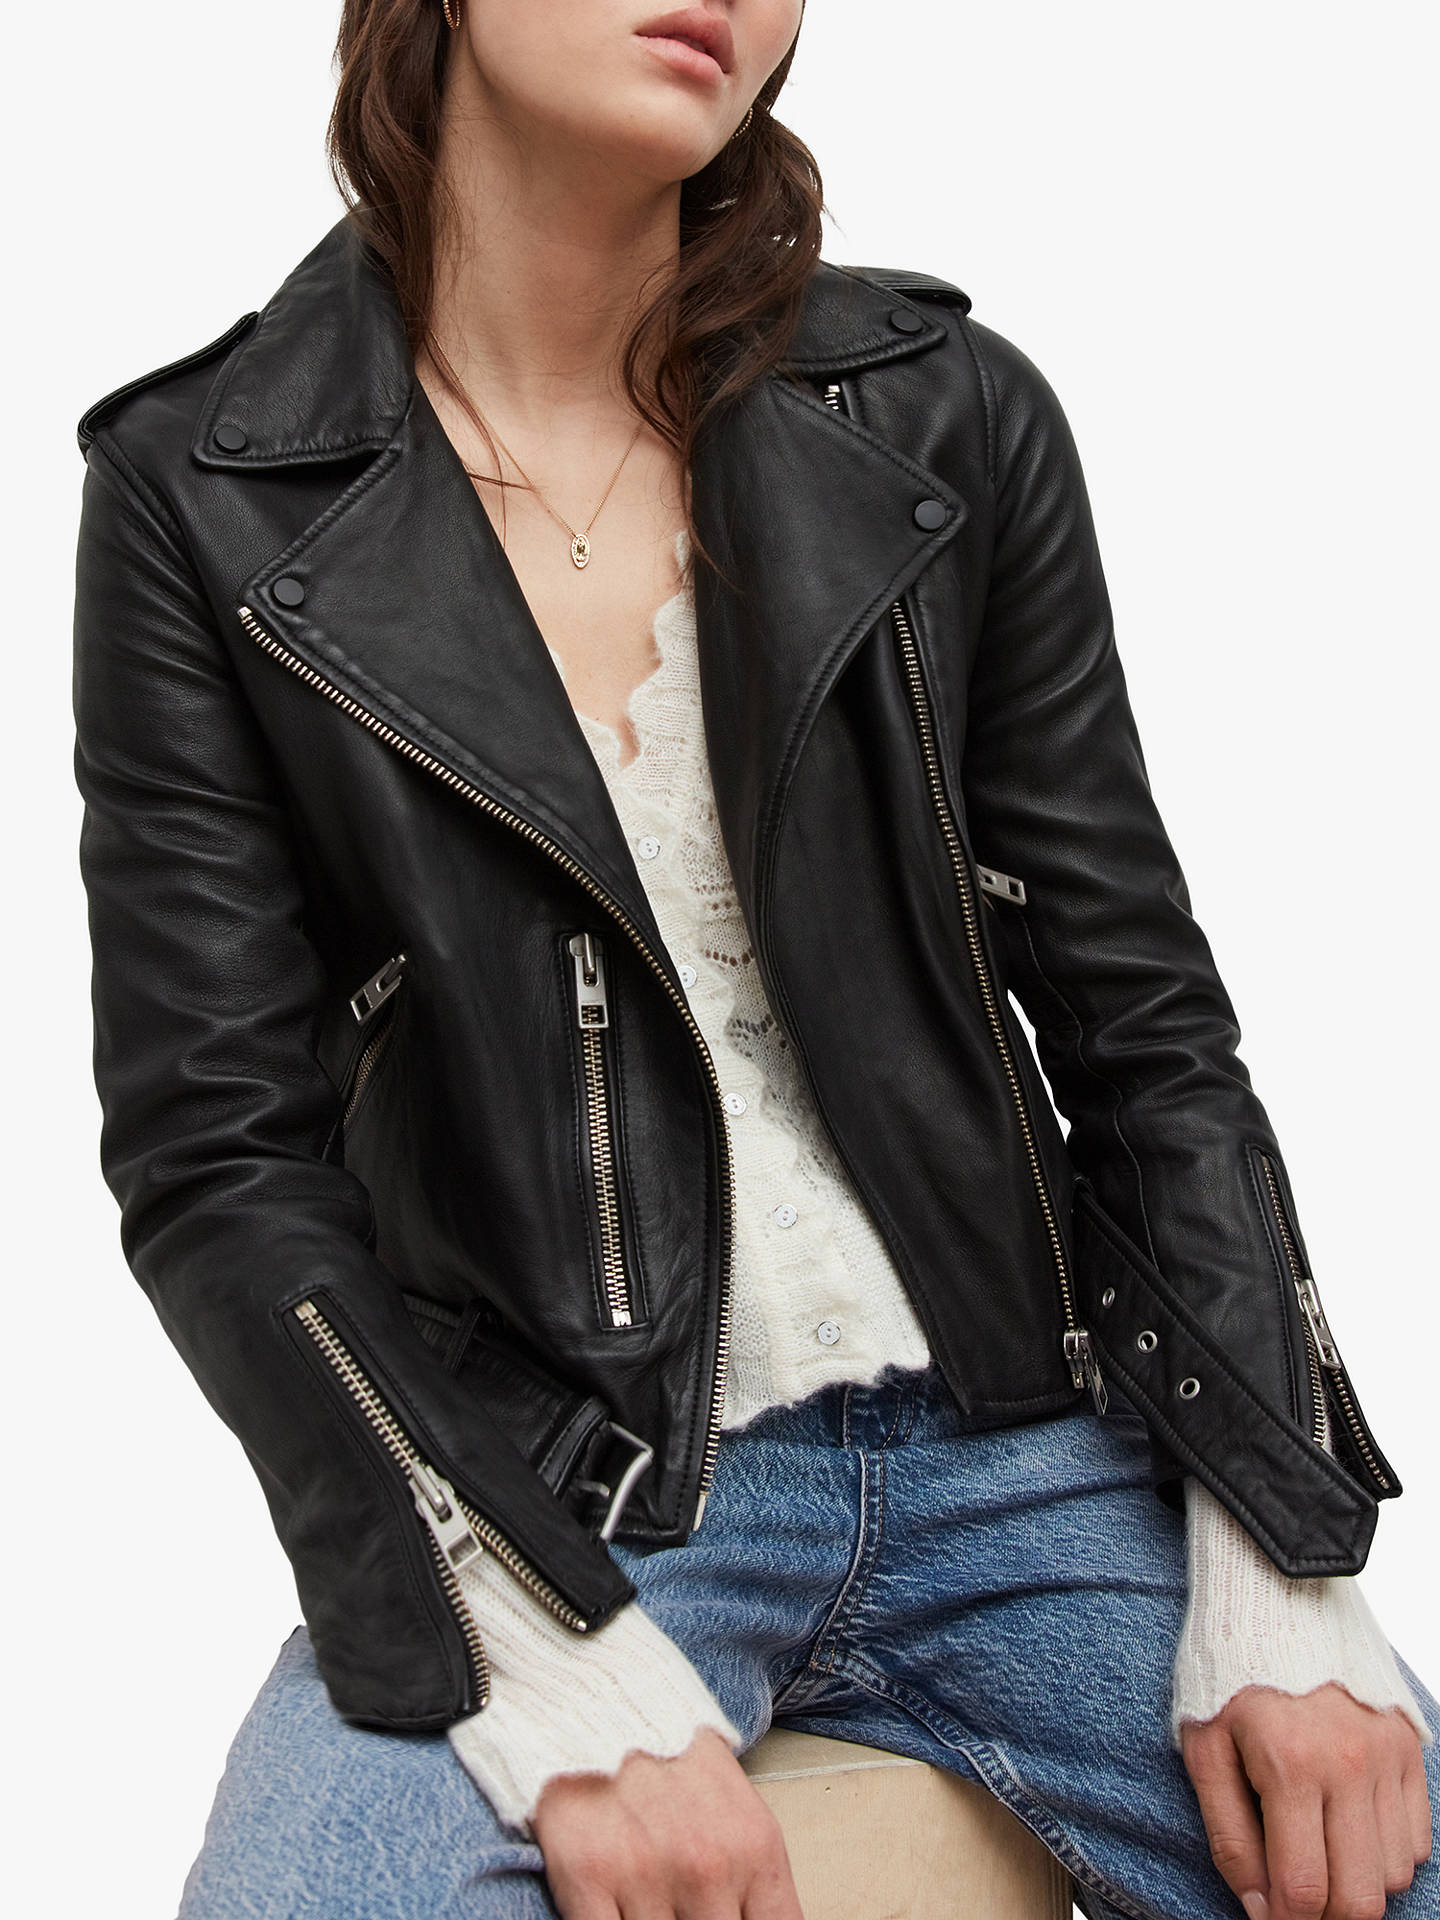 BuyAllSaints Leather Balfern Biker Jacket, Black, 6 Online at johnlewis.com